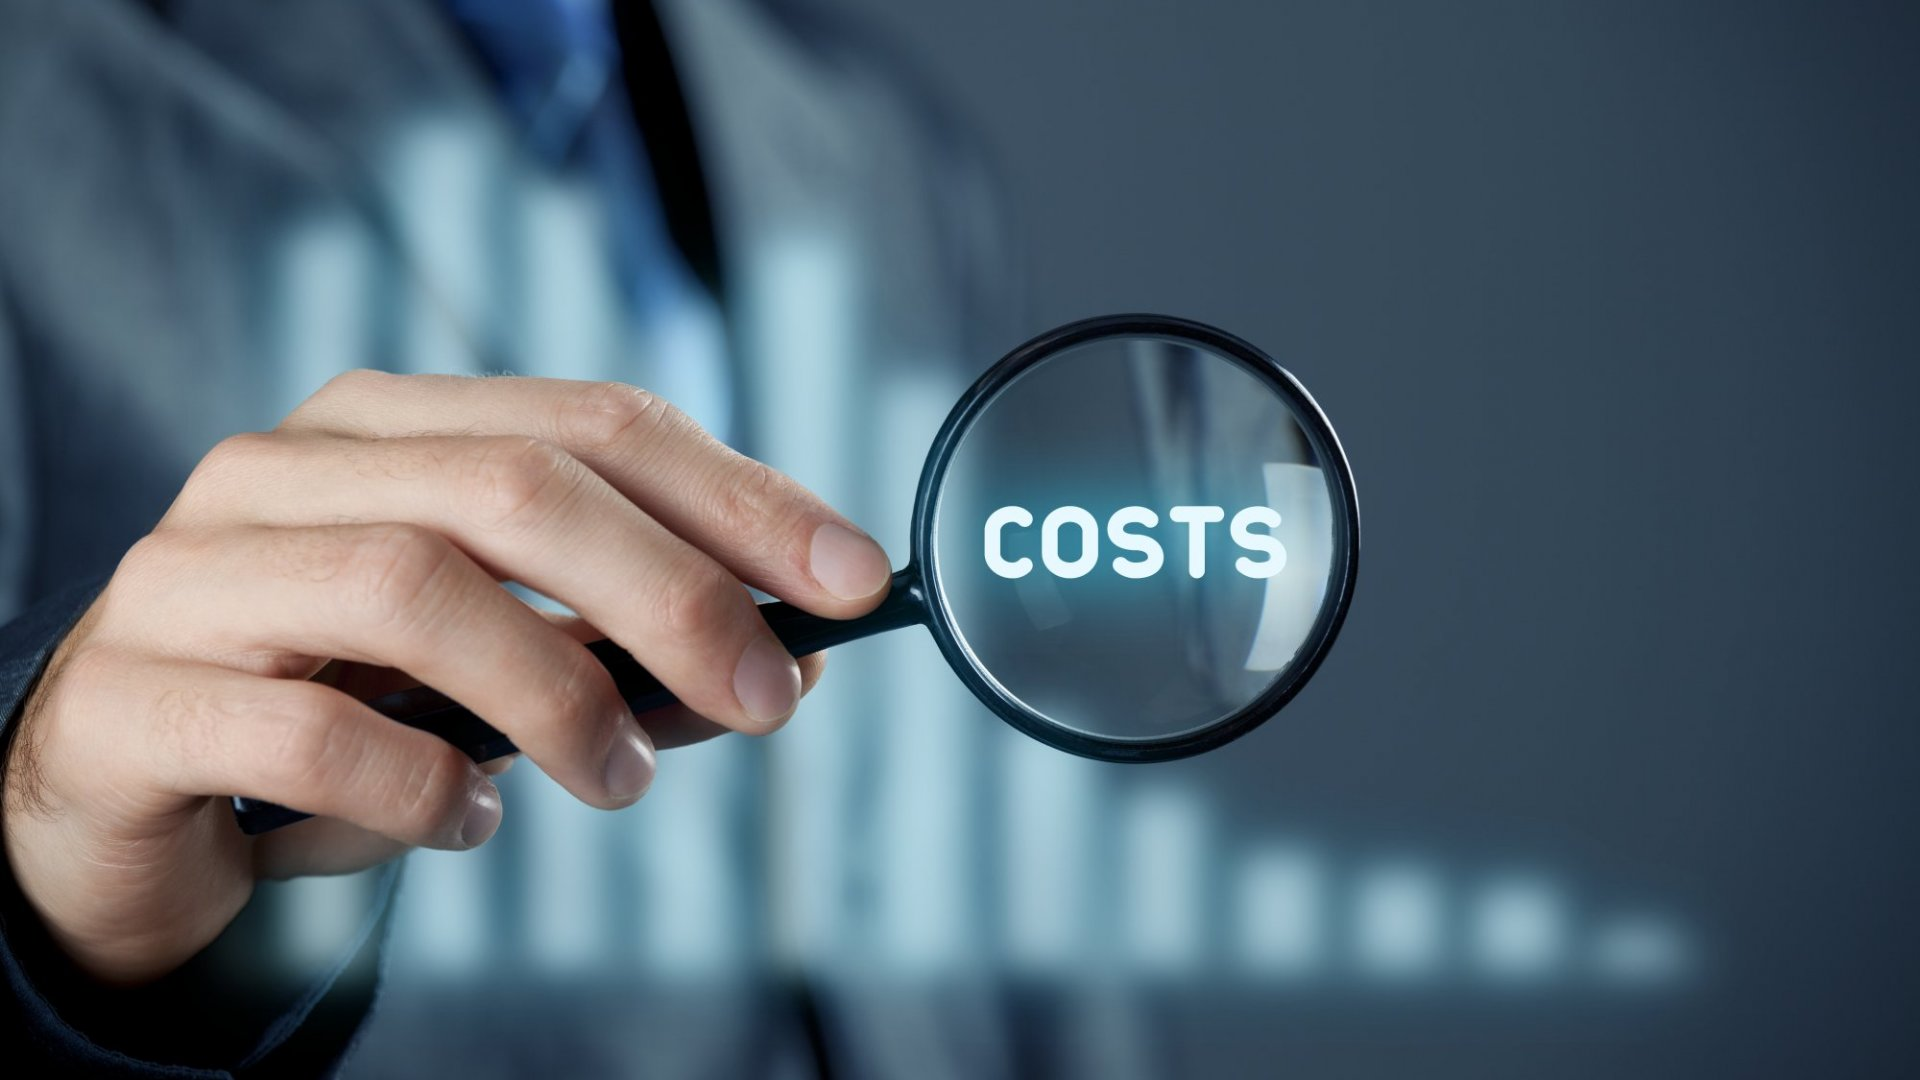 How To Increase The Effectiveness of Cost Saving Initiatives